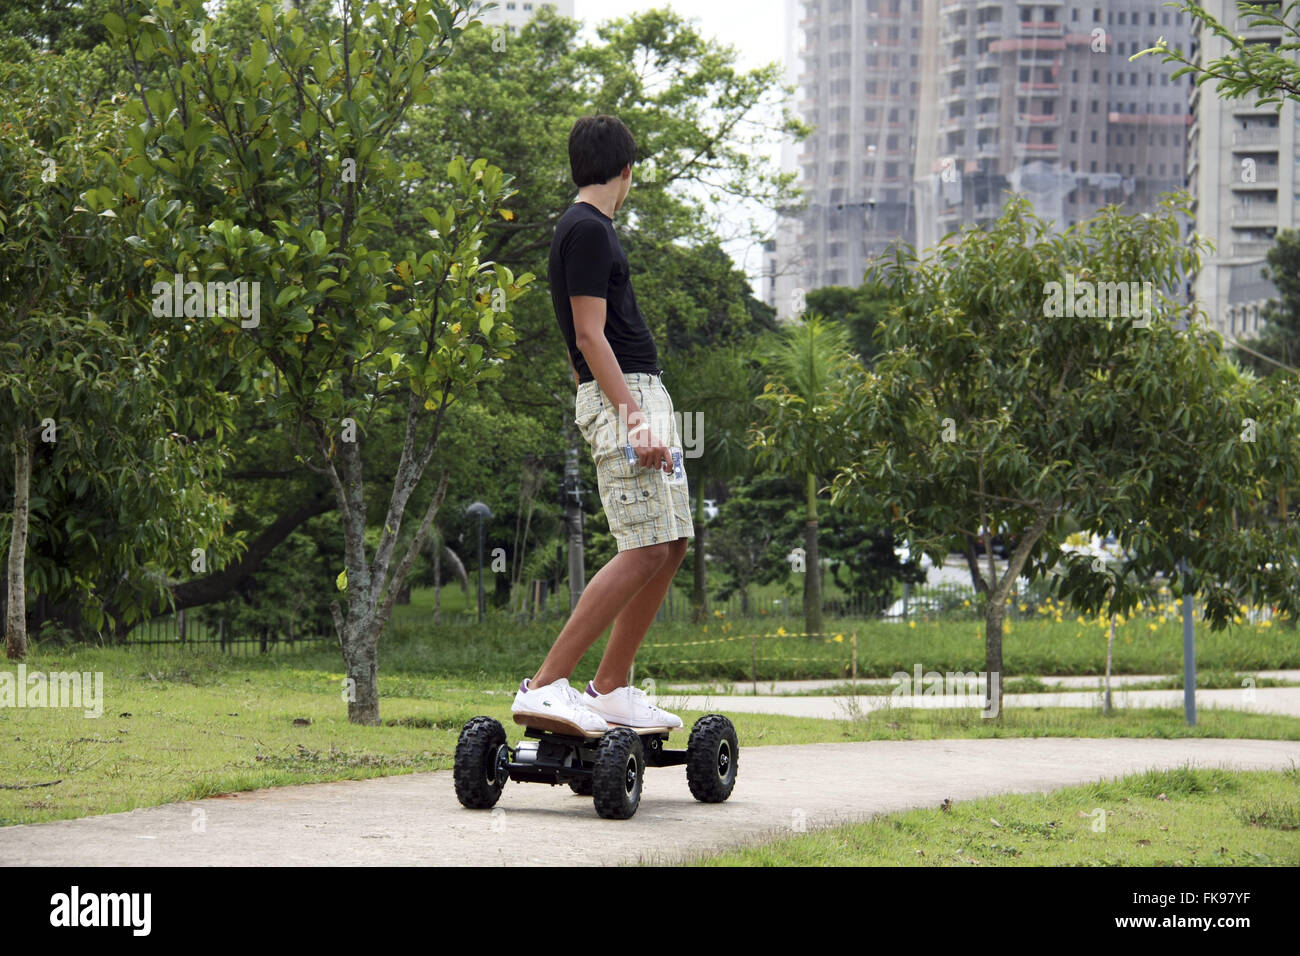 Young with motorized skateboard in People`s Park in Itaim Bibi neighborhood - Stock Image